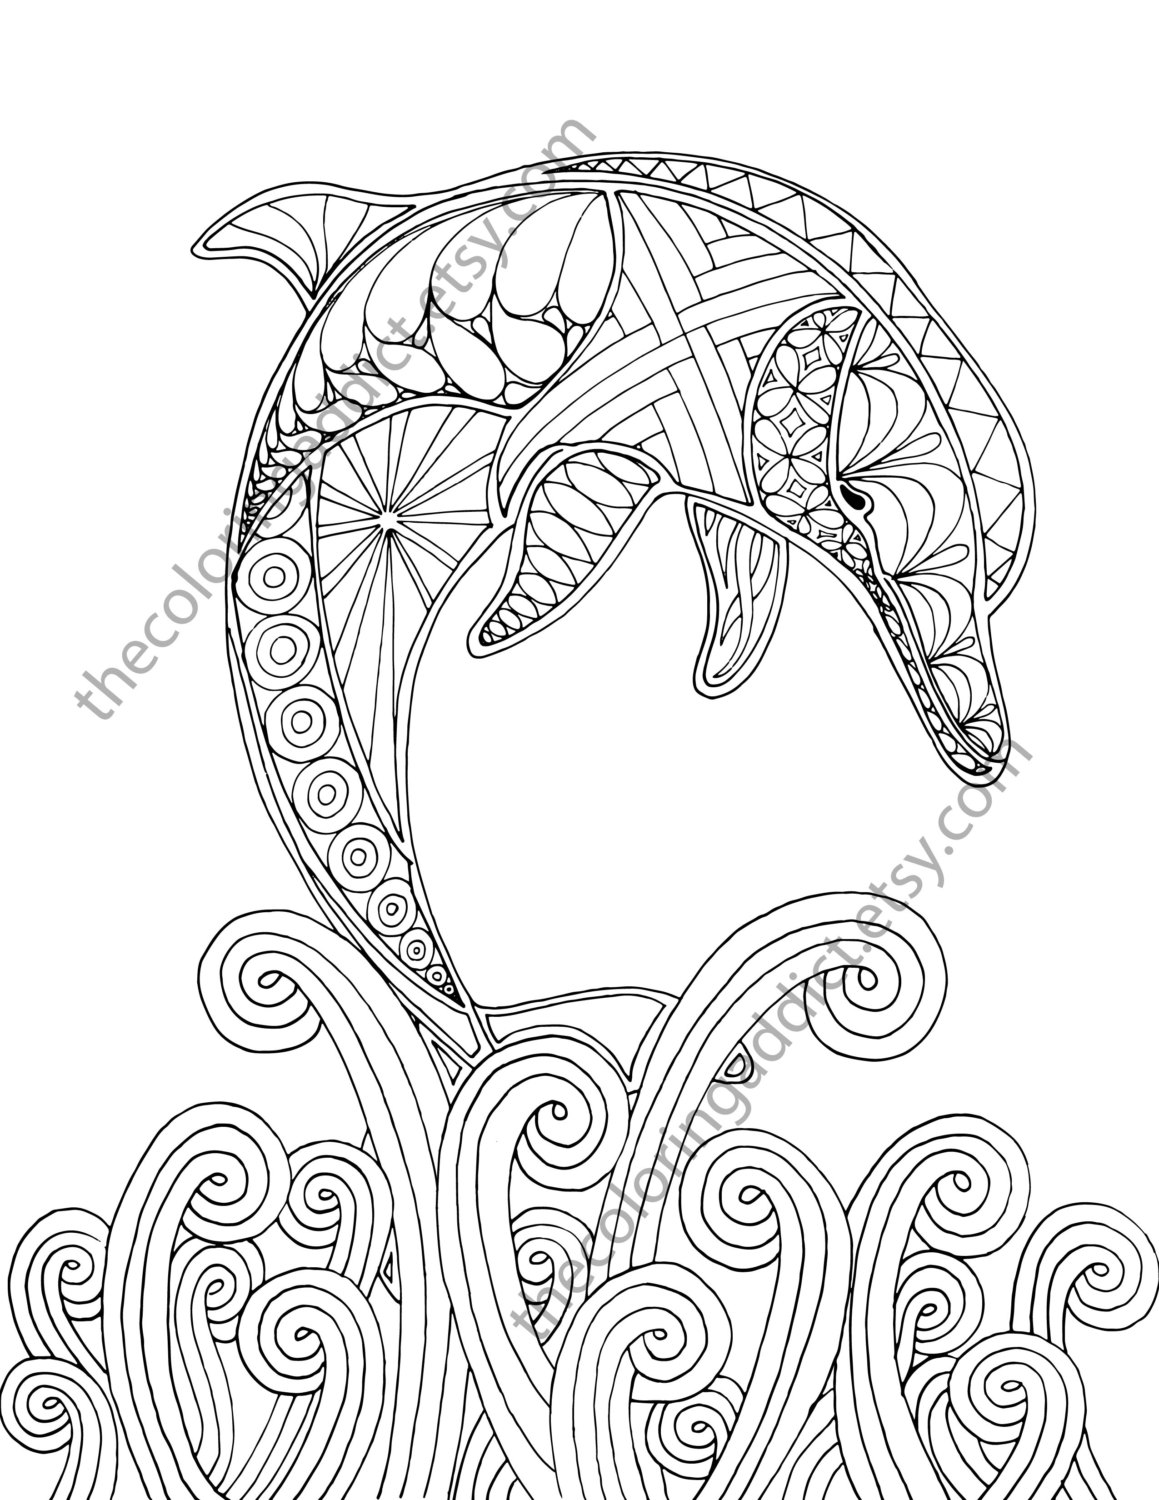 fun2draw coloring pages printable | Dolphin Easy Drawing at GetDrawings.com | Free for ...